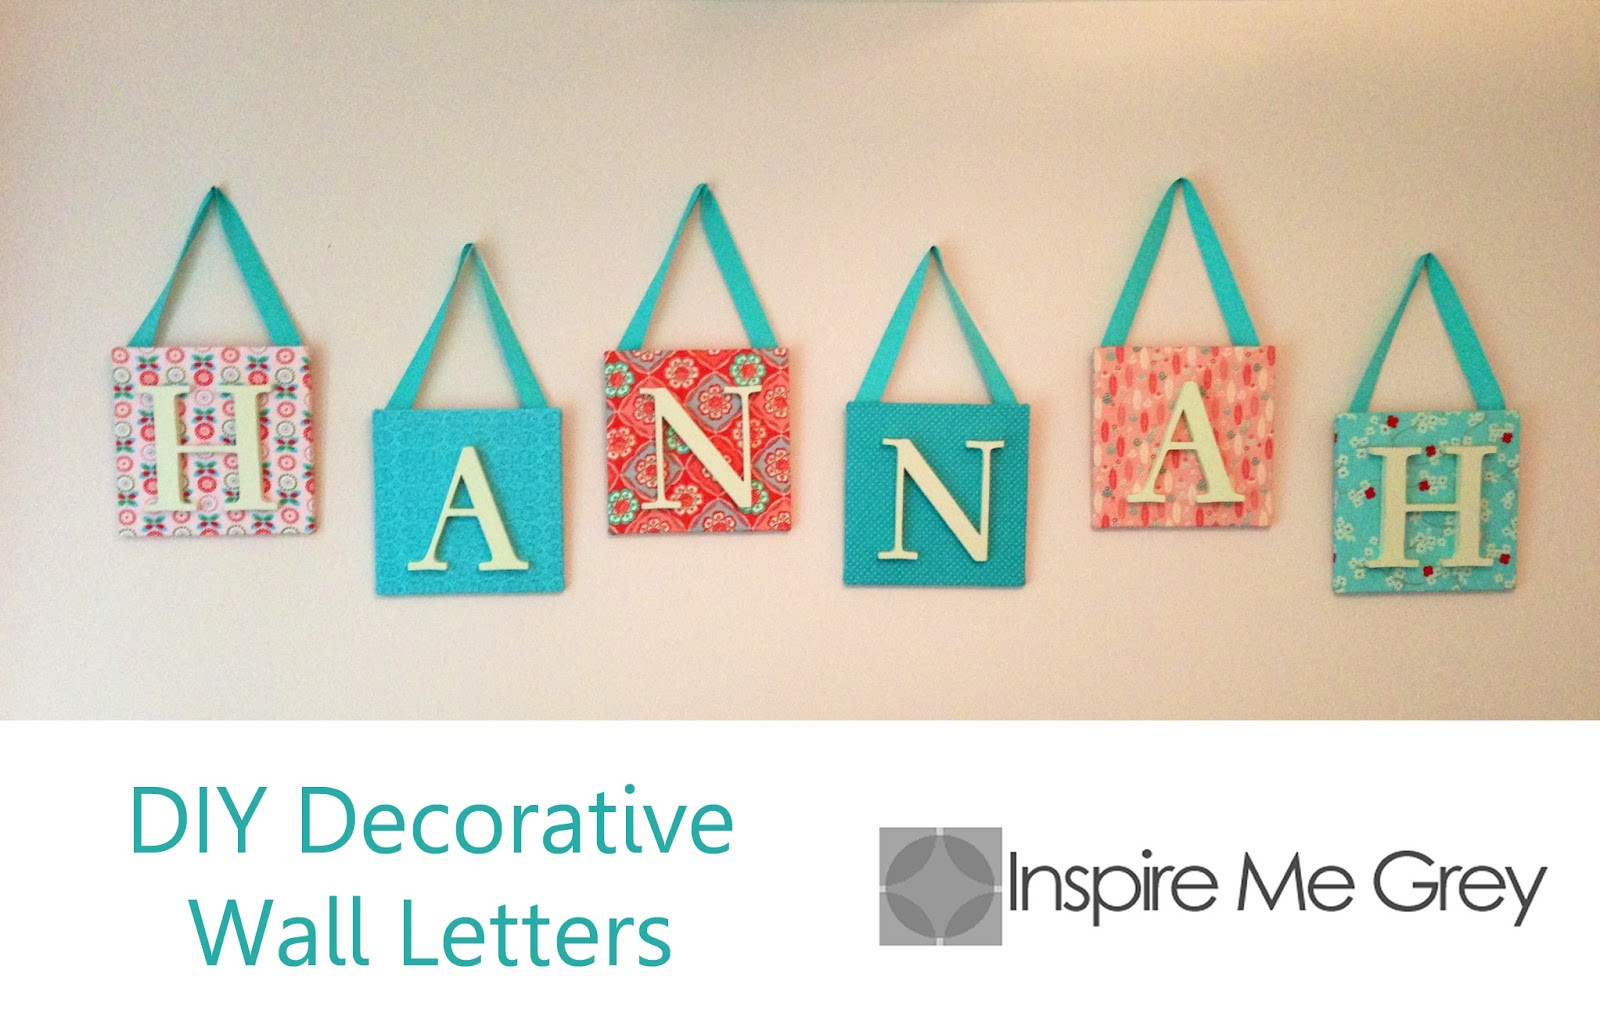 Best ideas about DIY Wall Letters . Save or Pin Inspire Me Grey DIY Decorative Wall Letters Now.